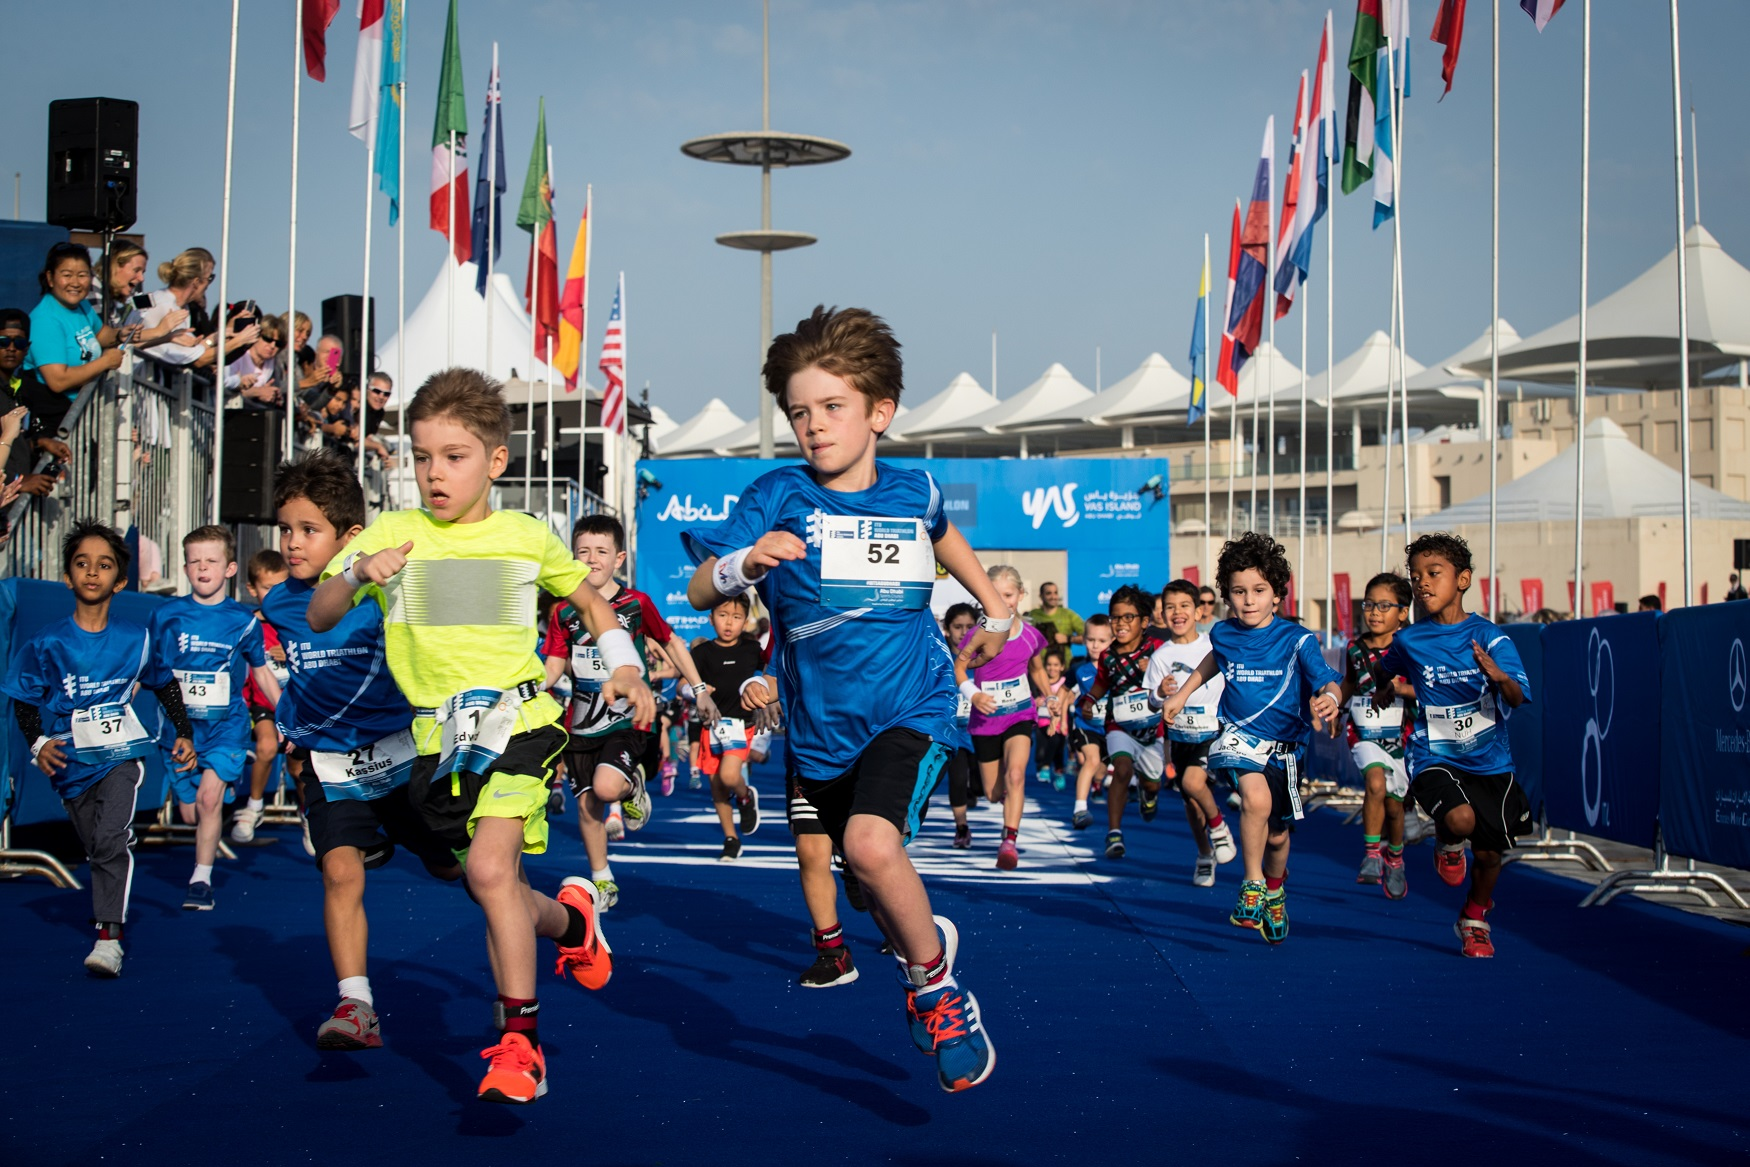 The ITU World Triathlon Abu Dhabi 2018 will see the return of the Junior Triathlon